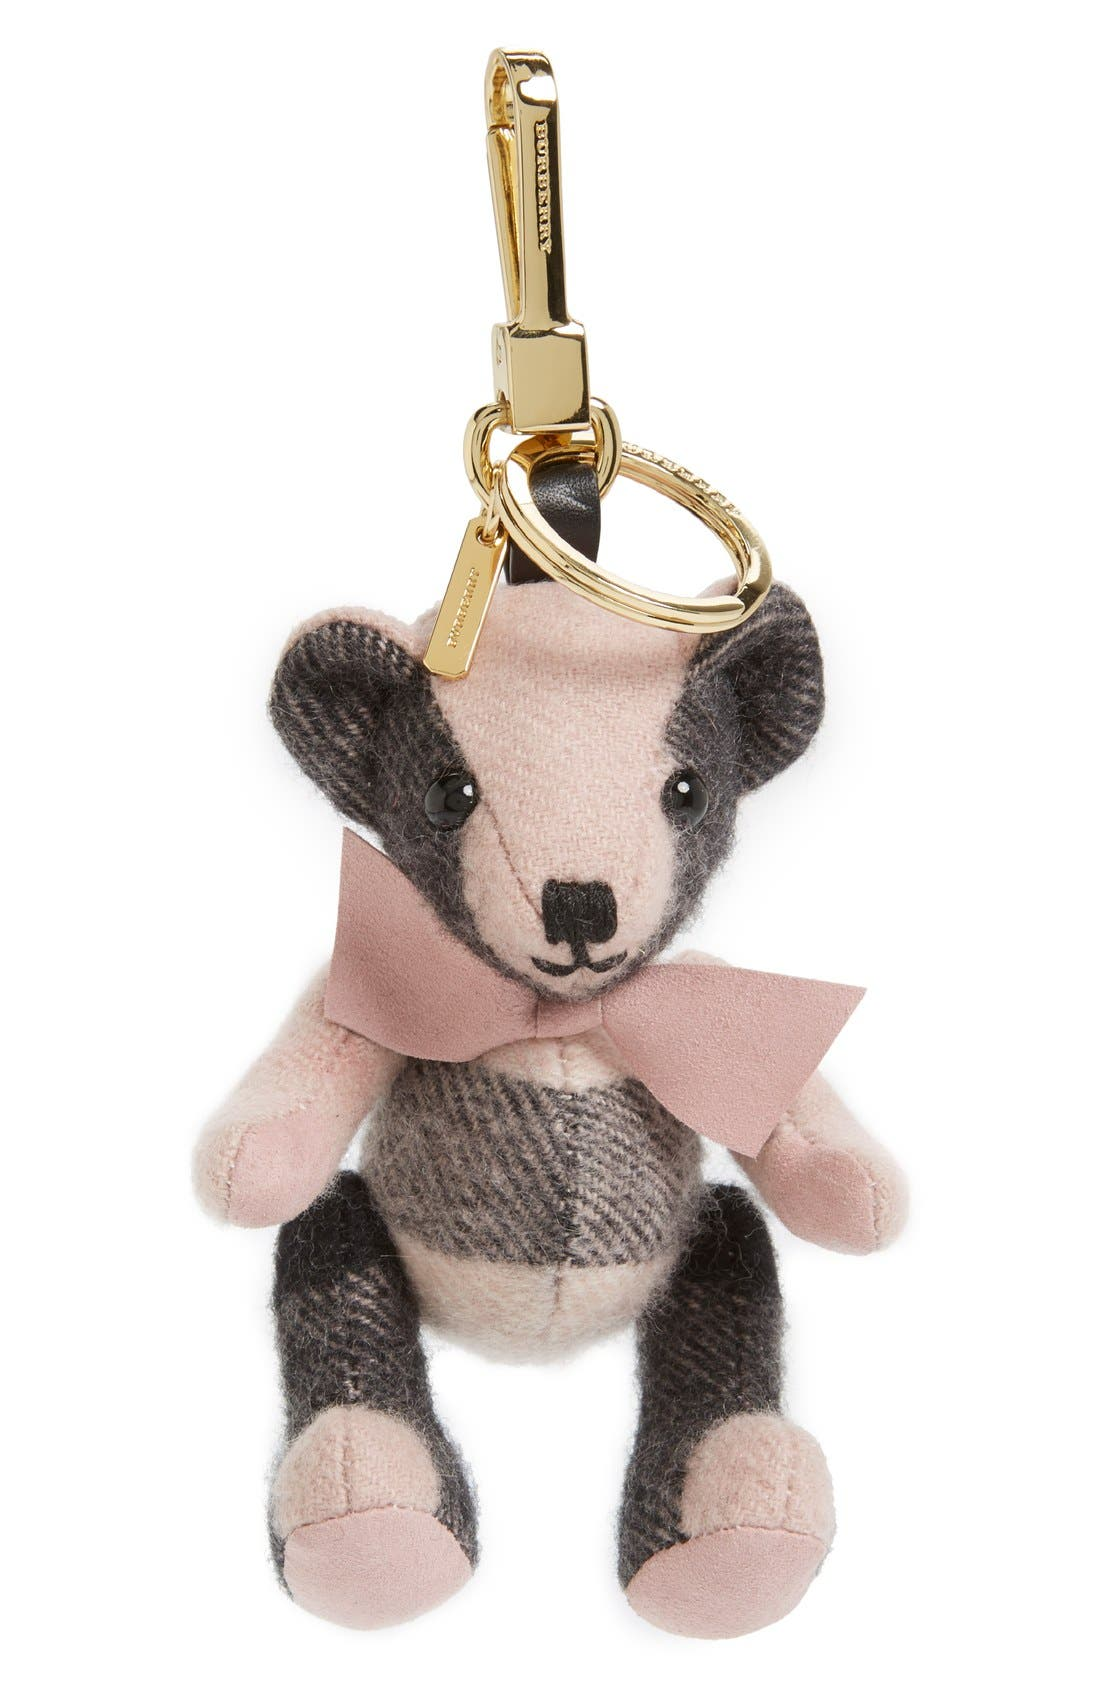 BURBERRY 'Thomas' Check Bear Cashmere Bag Charm